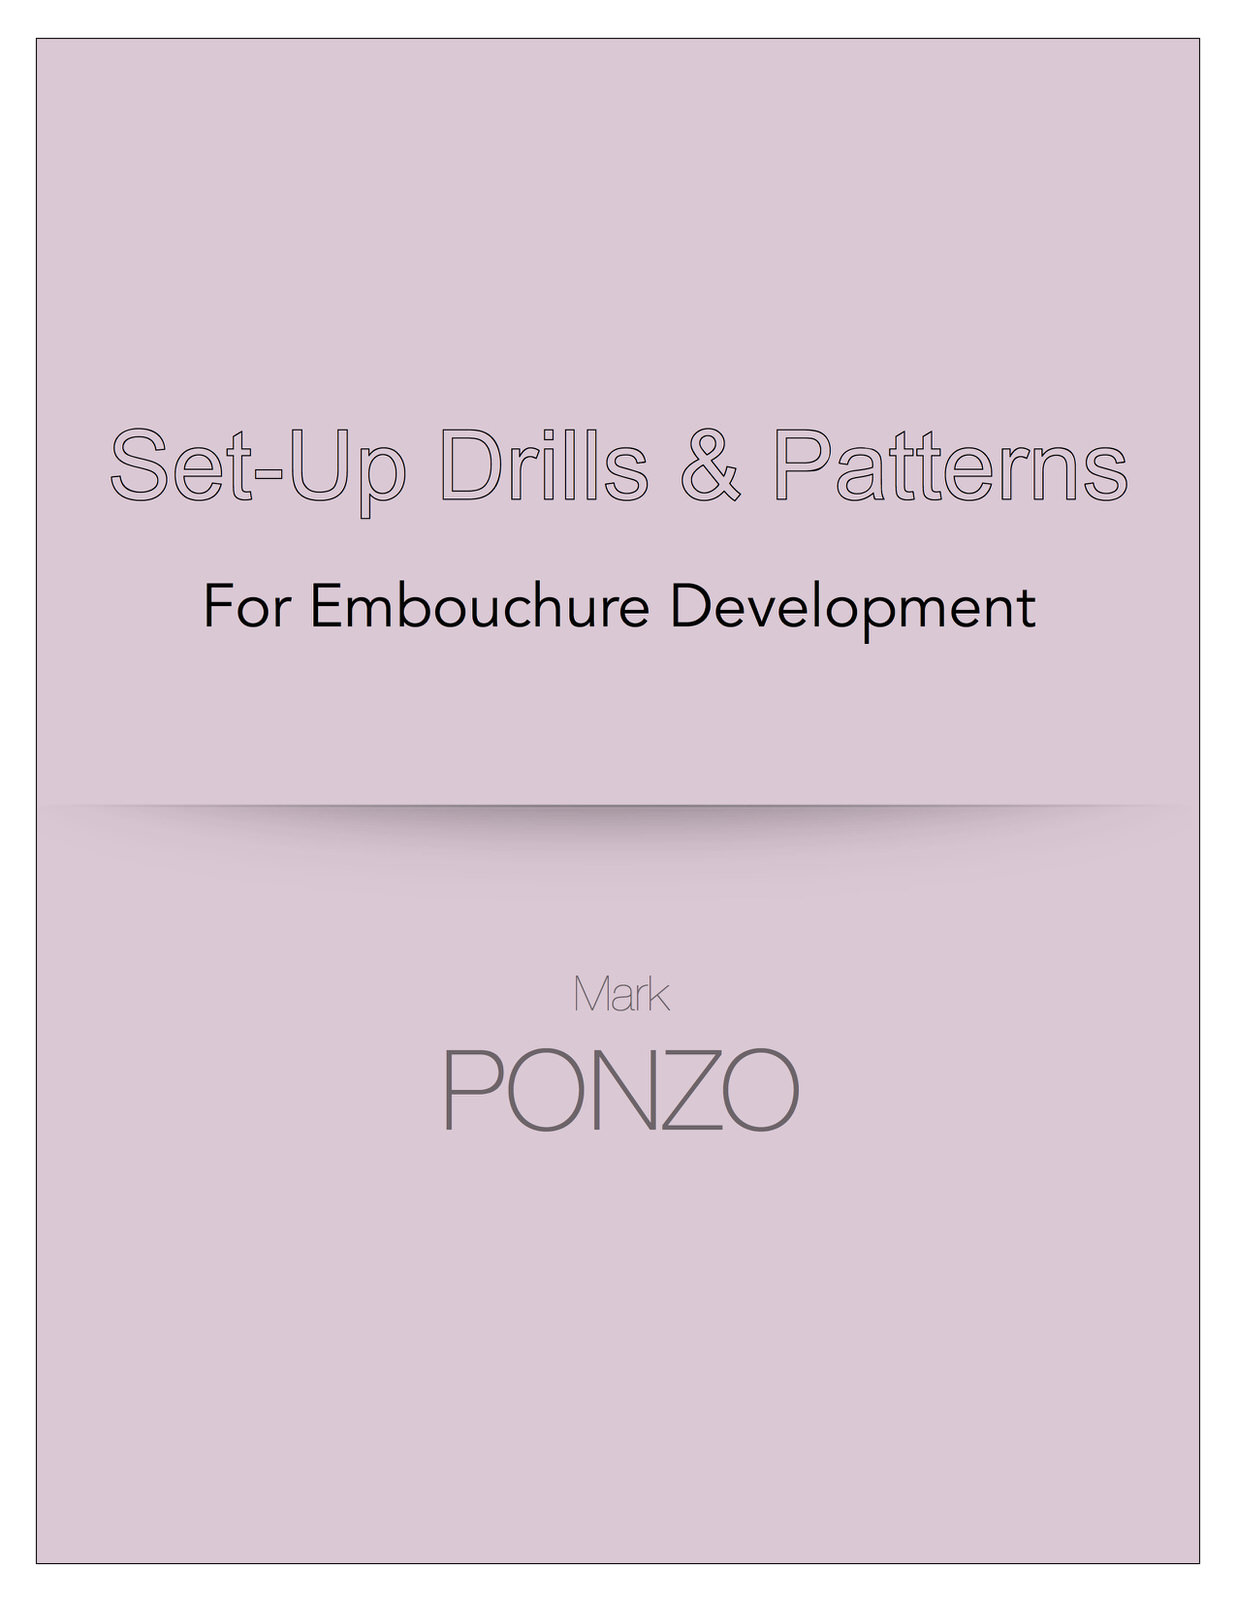 Ponzo, Set Up Drills and Patterns for Embouchure Development